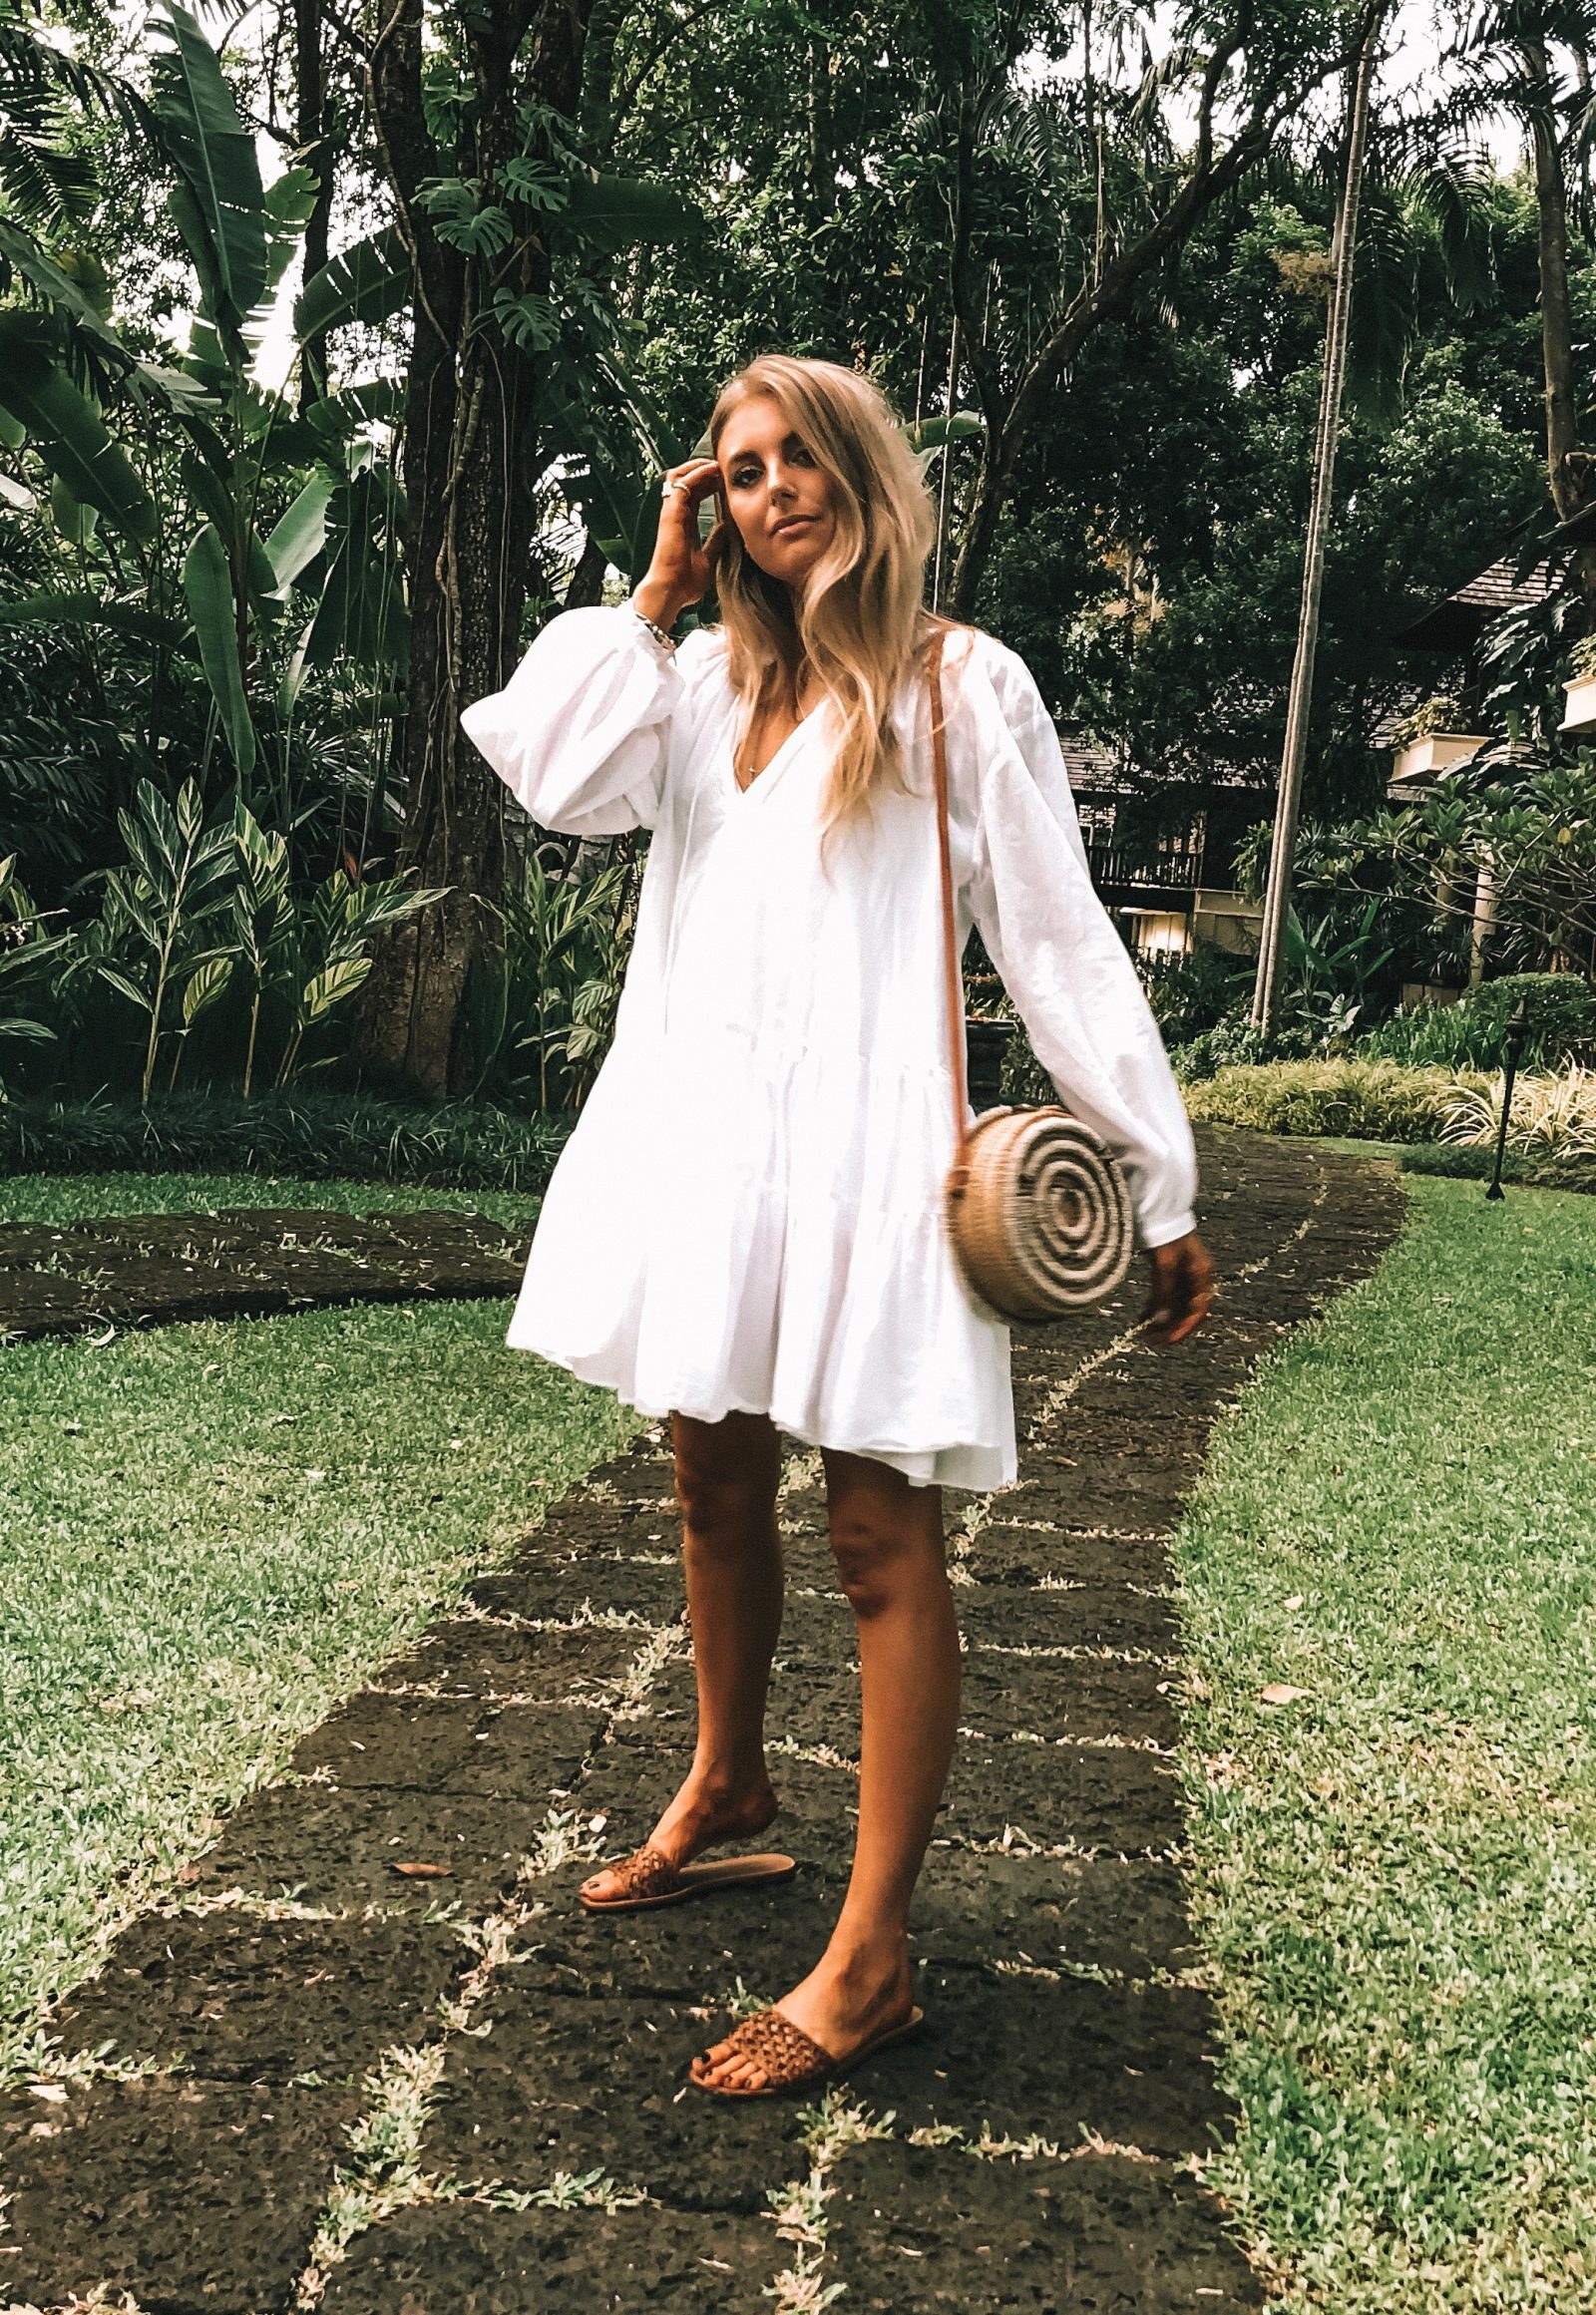 Thailand Outift Diaries - HM White Smock Dress - Chiang Mai Outfit Diaries